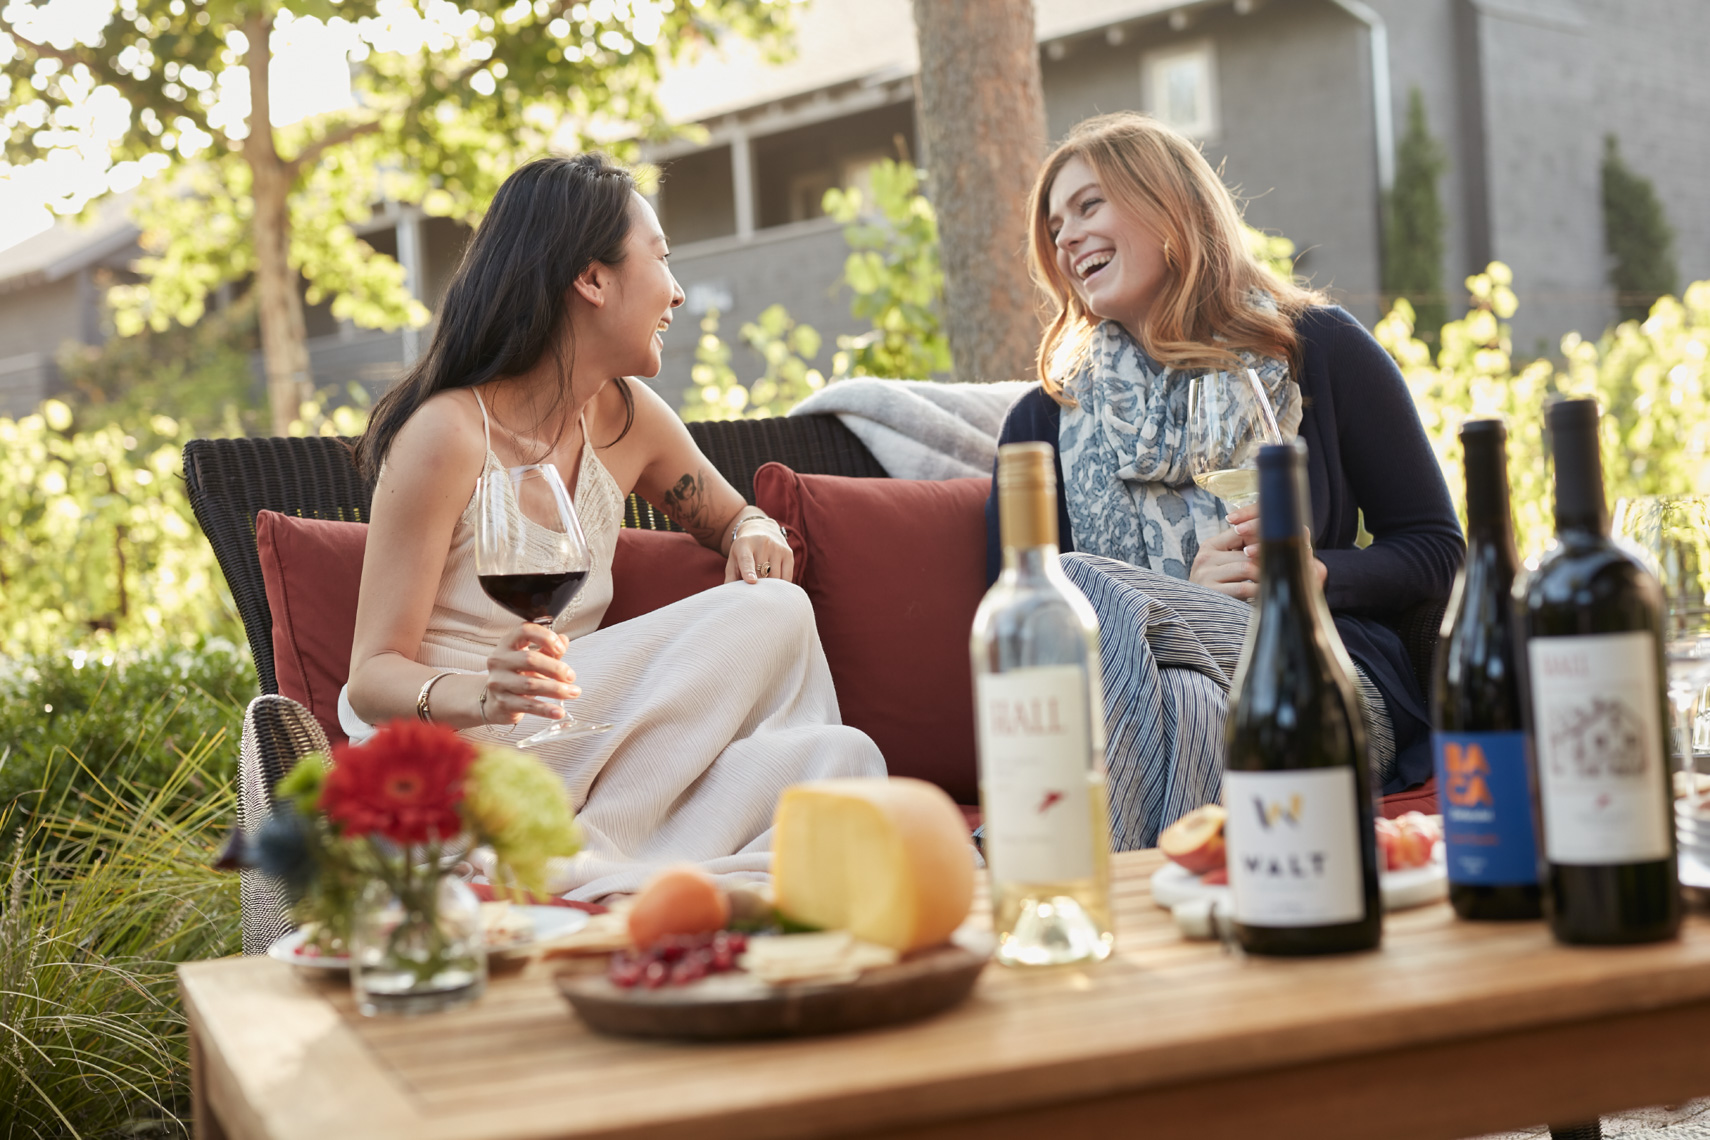 Two women talking and enjoying wine and cheese near the vinyard at Senza hotel in Napa California.